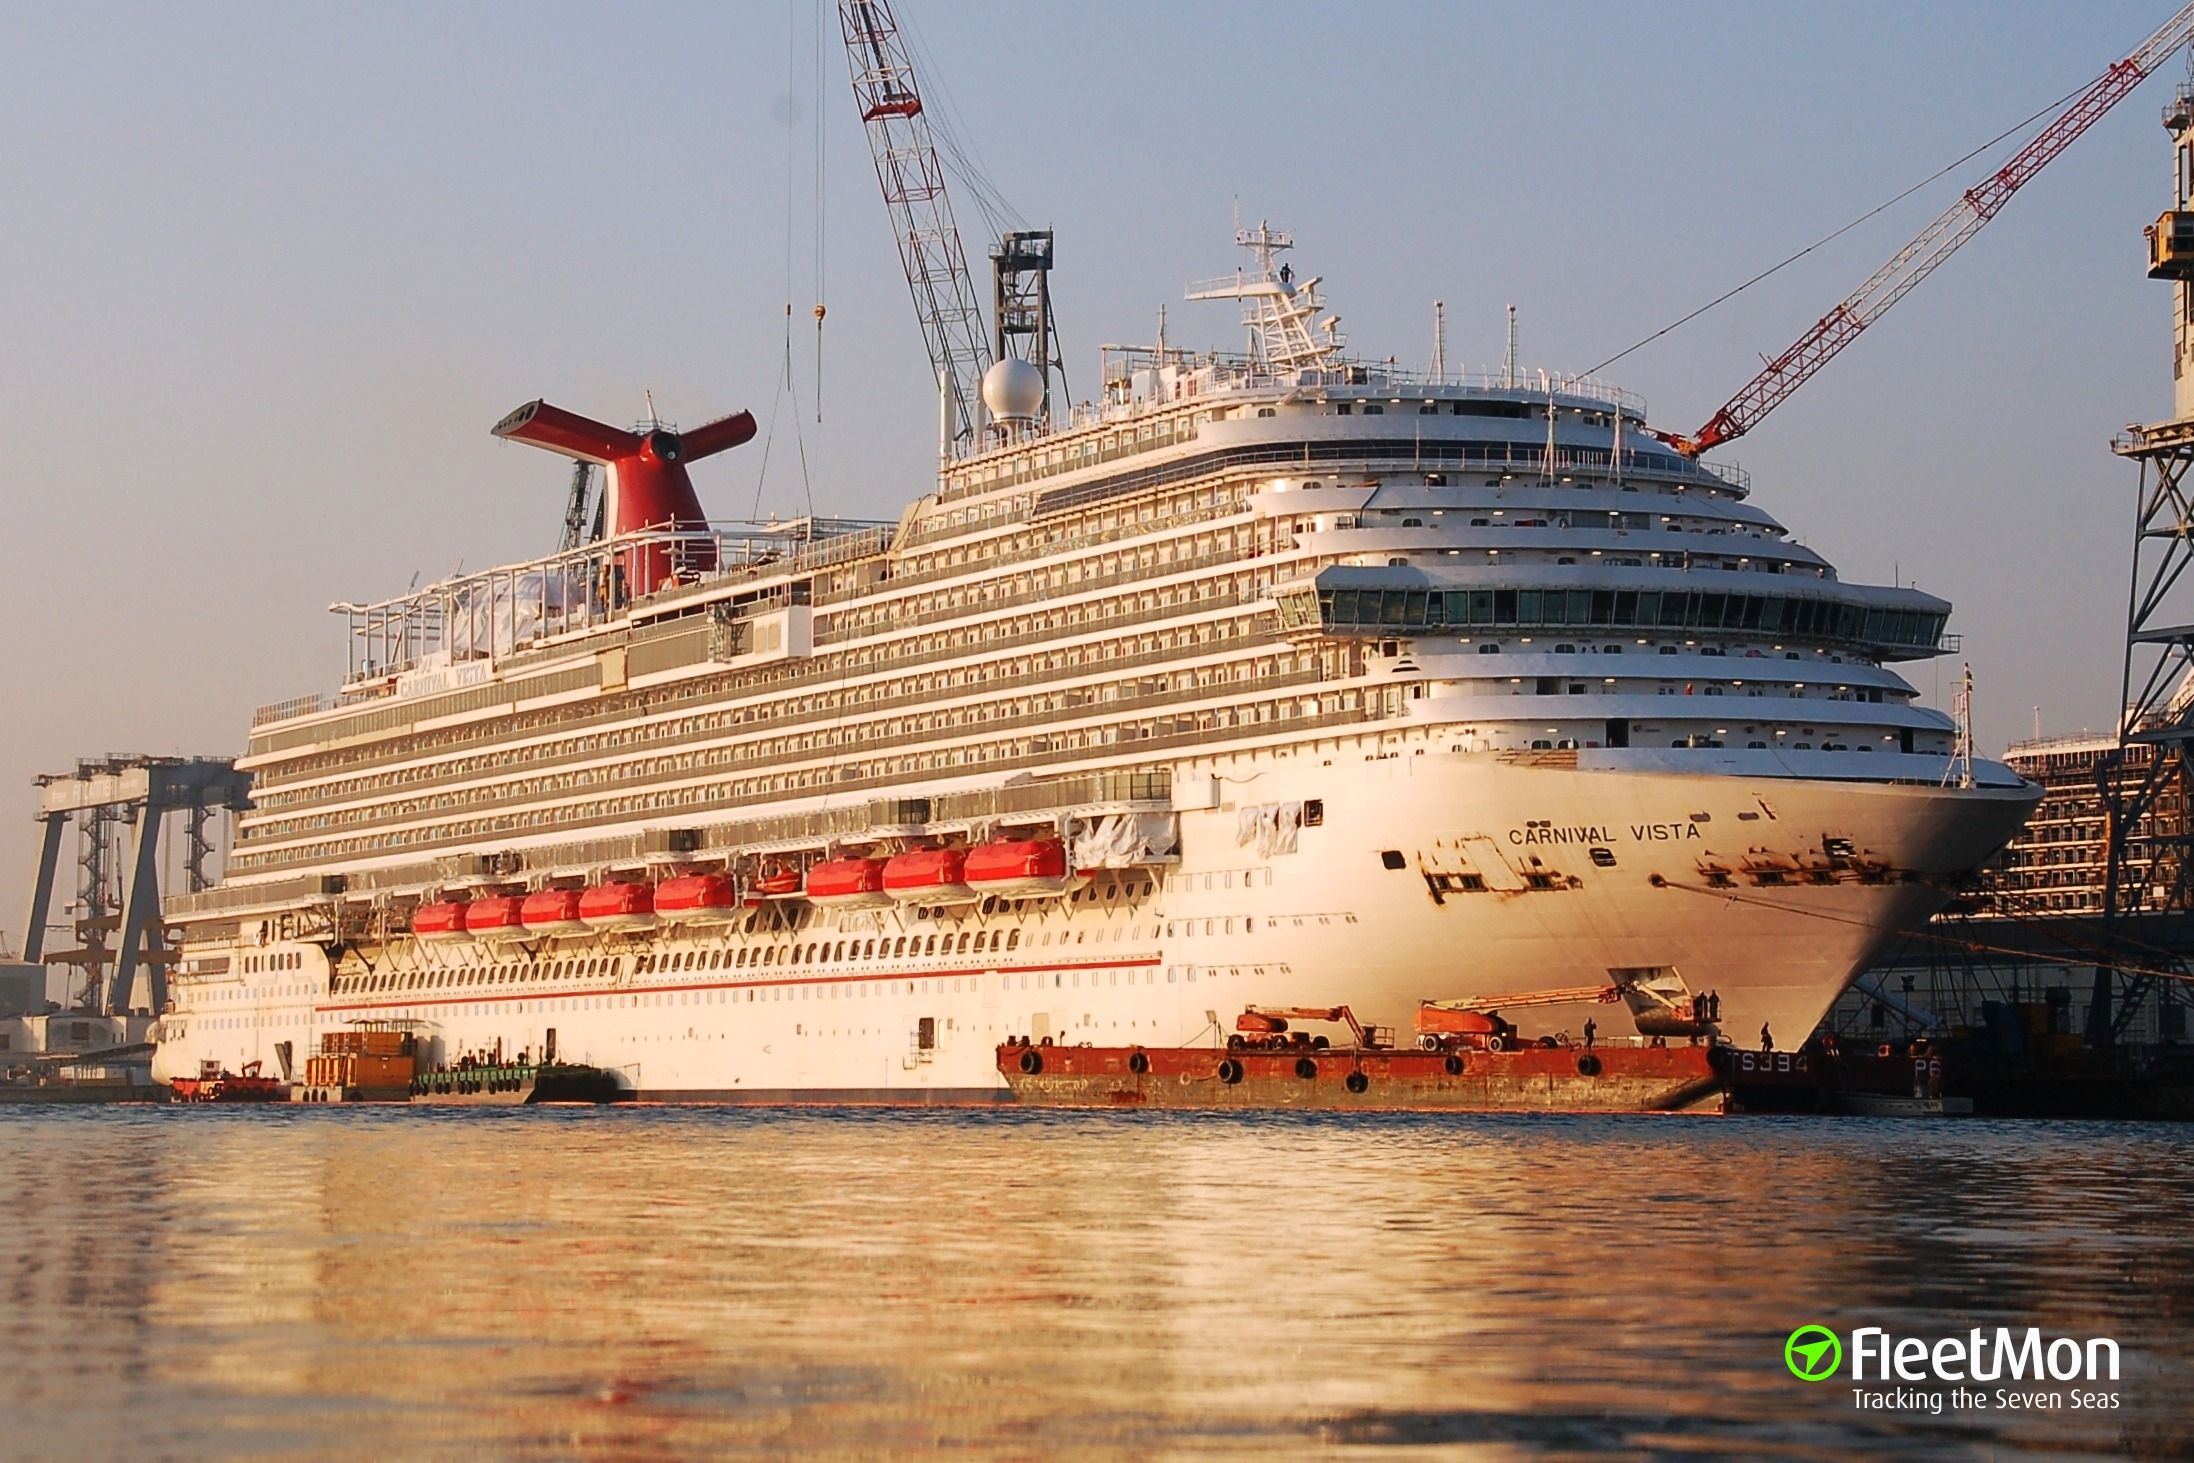 Photo Of Carnival Vista Imo 9692569 Mmsi 356883000